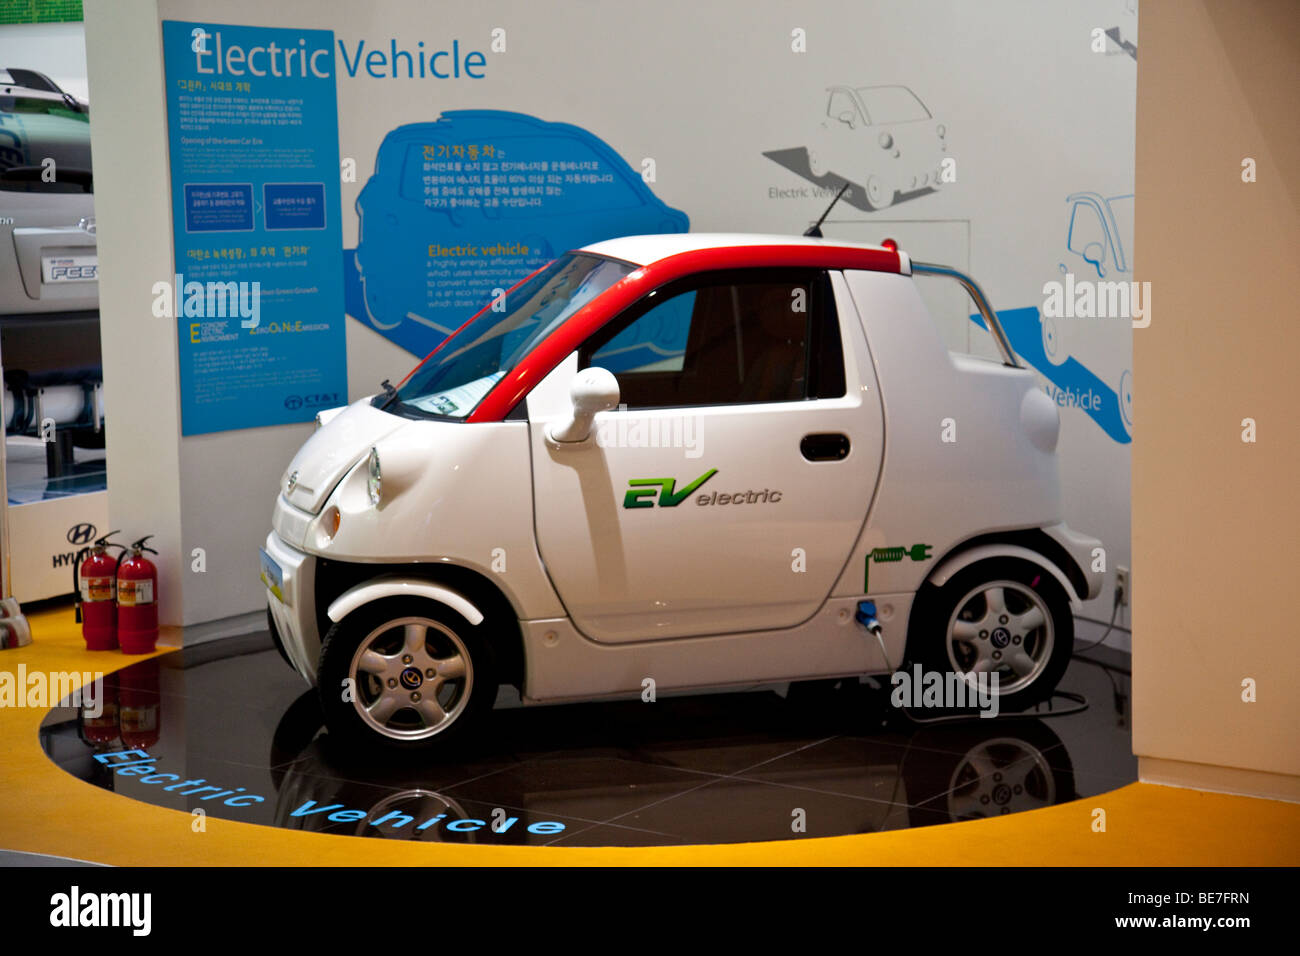 EV or Electric Vehicle on display in Seoul South Korea - Stock Image